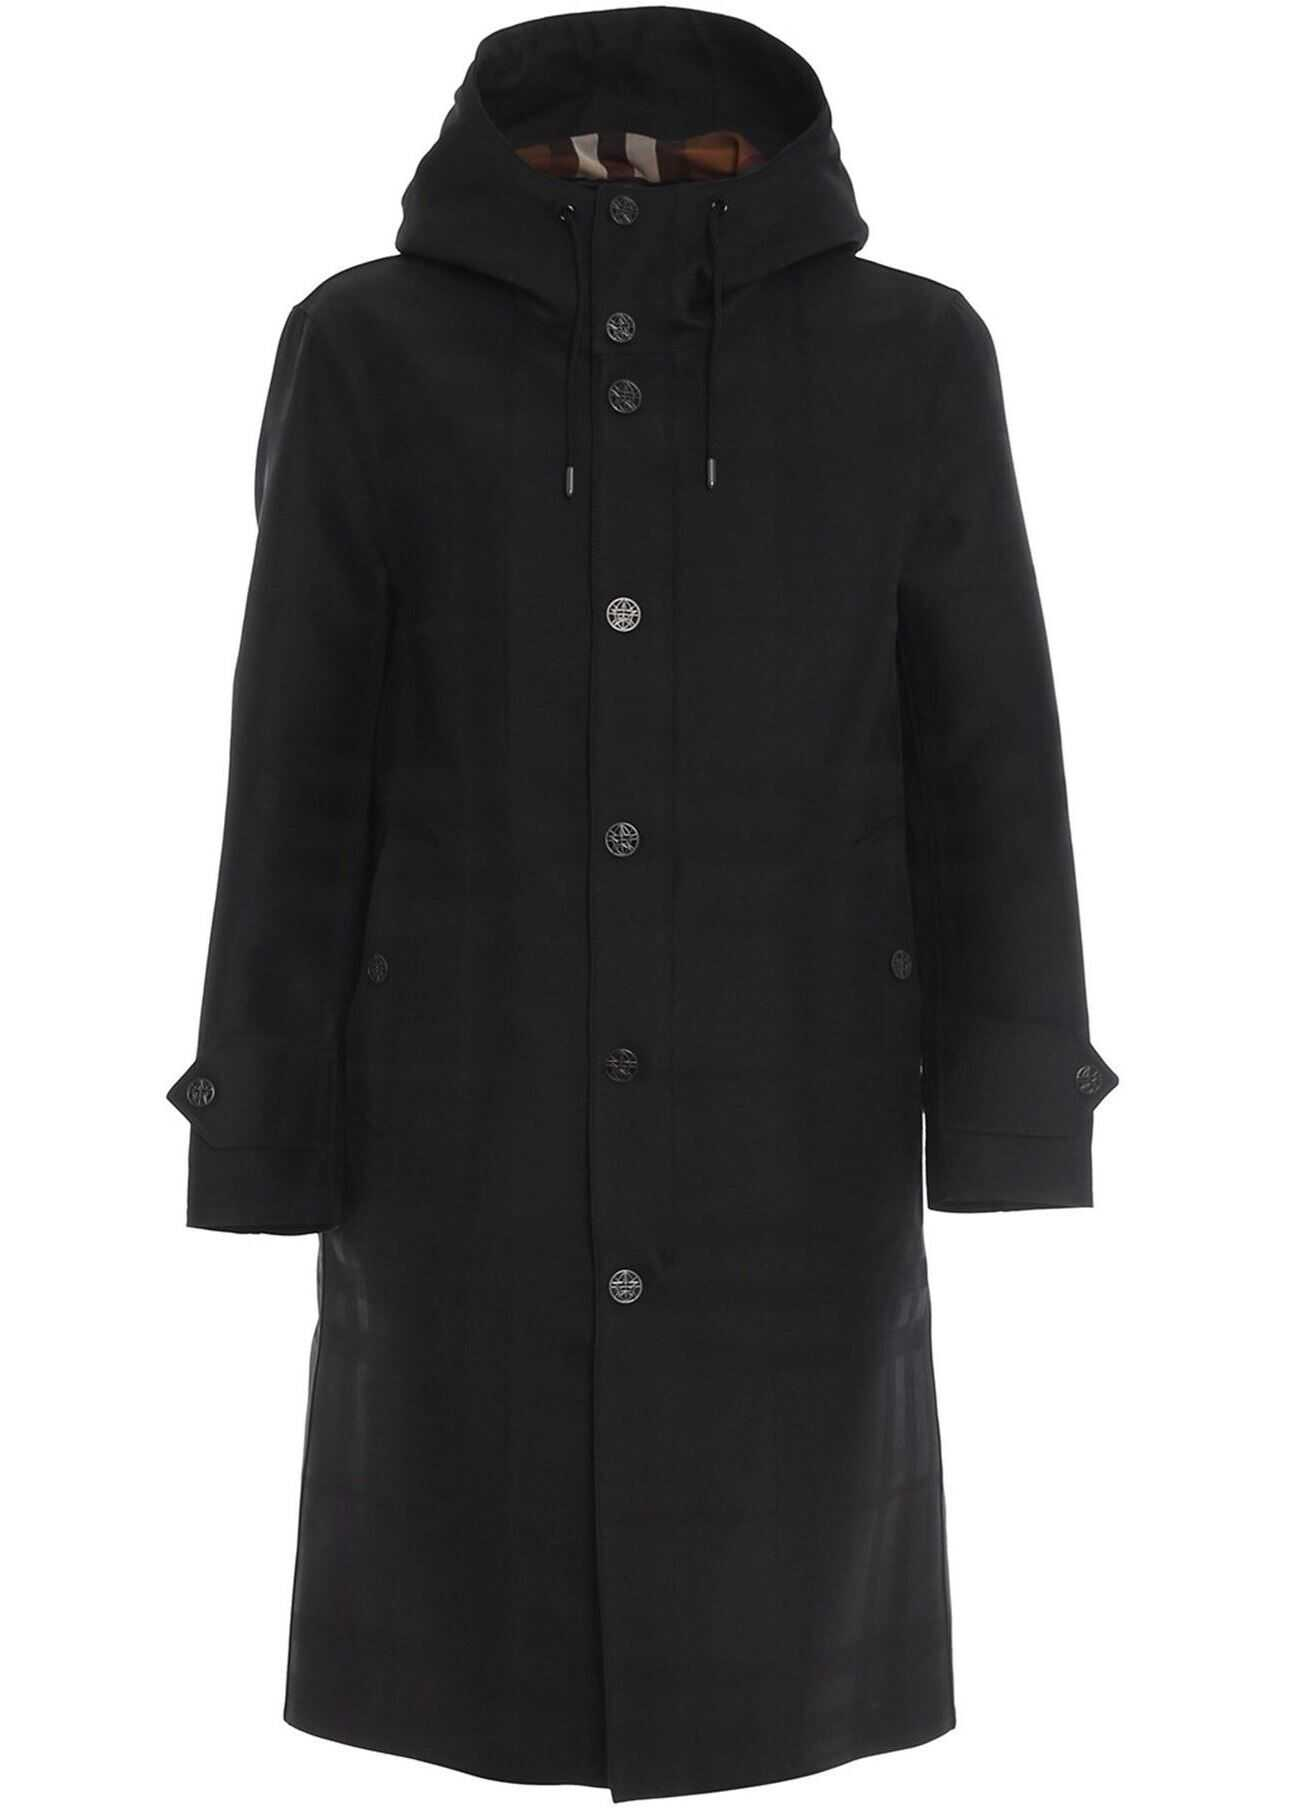 Burberry Witham Waxed Coat In Black Black imagine